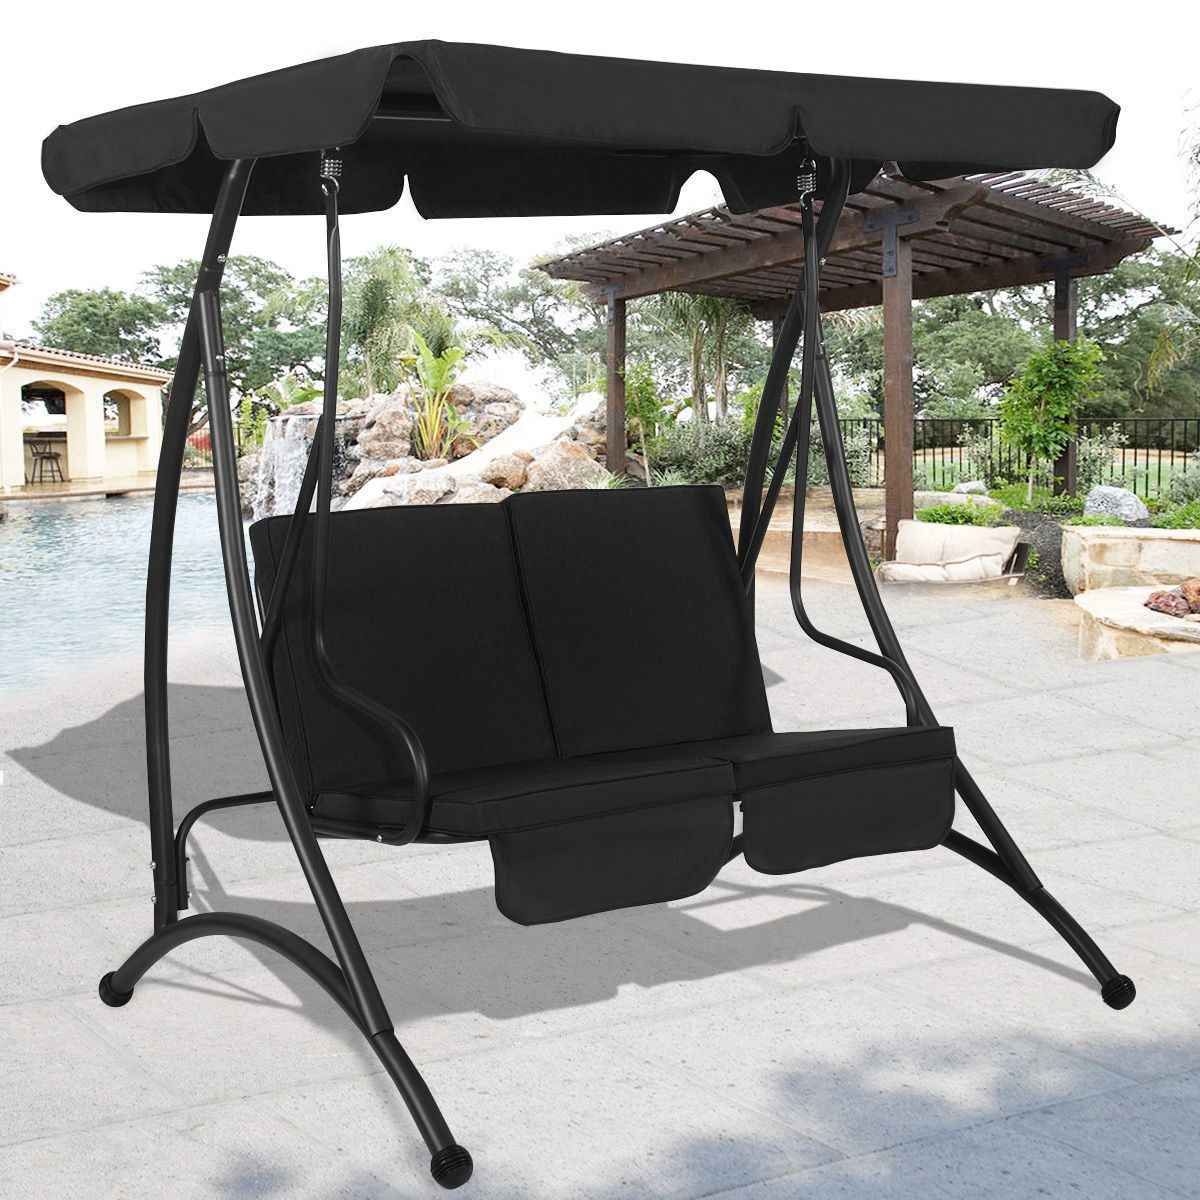 outdoor patio canopy swing chair metal 2 person garden furniture rh pinterest com